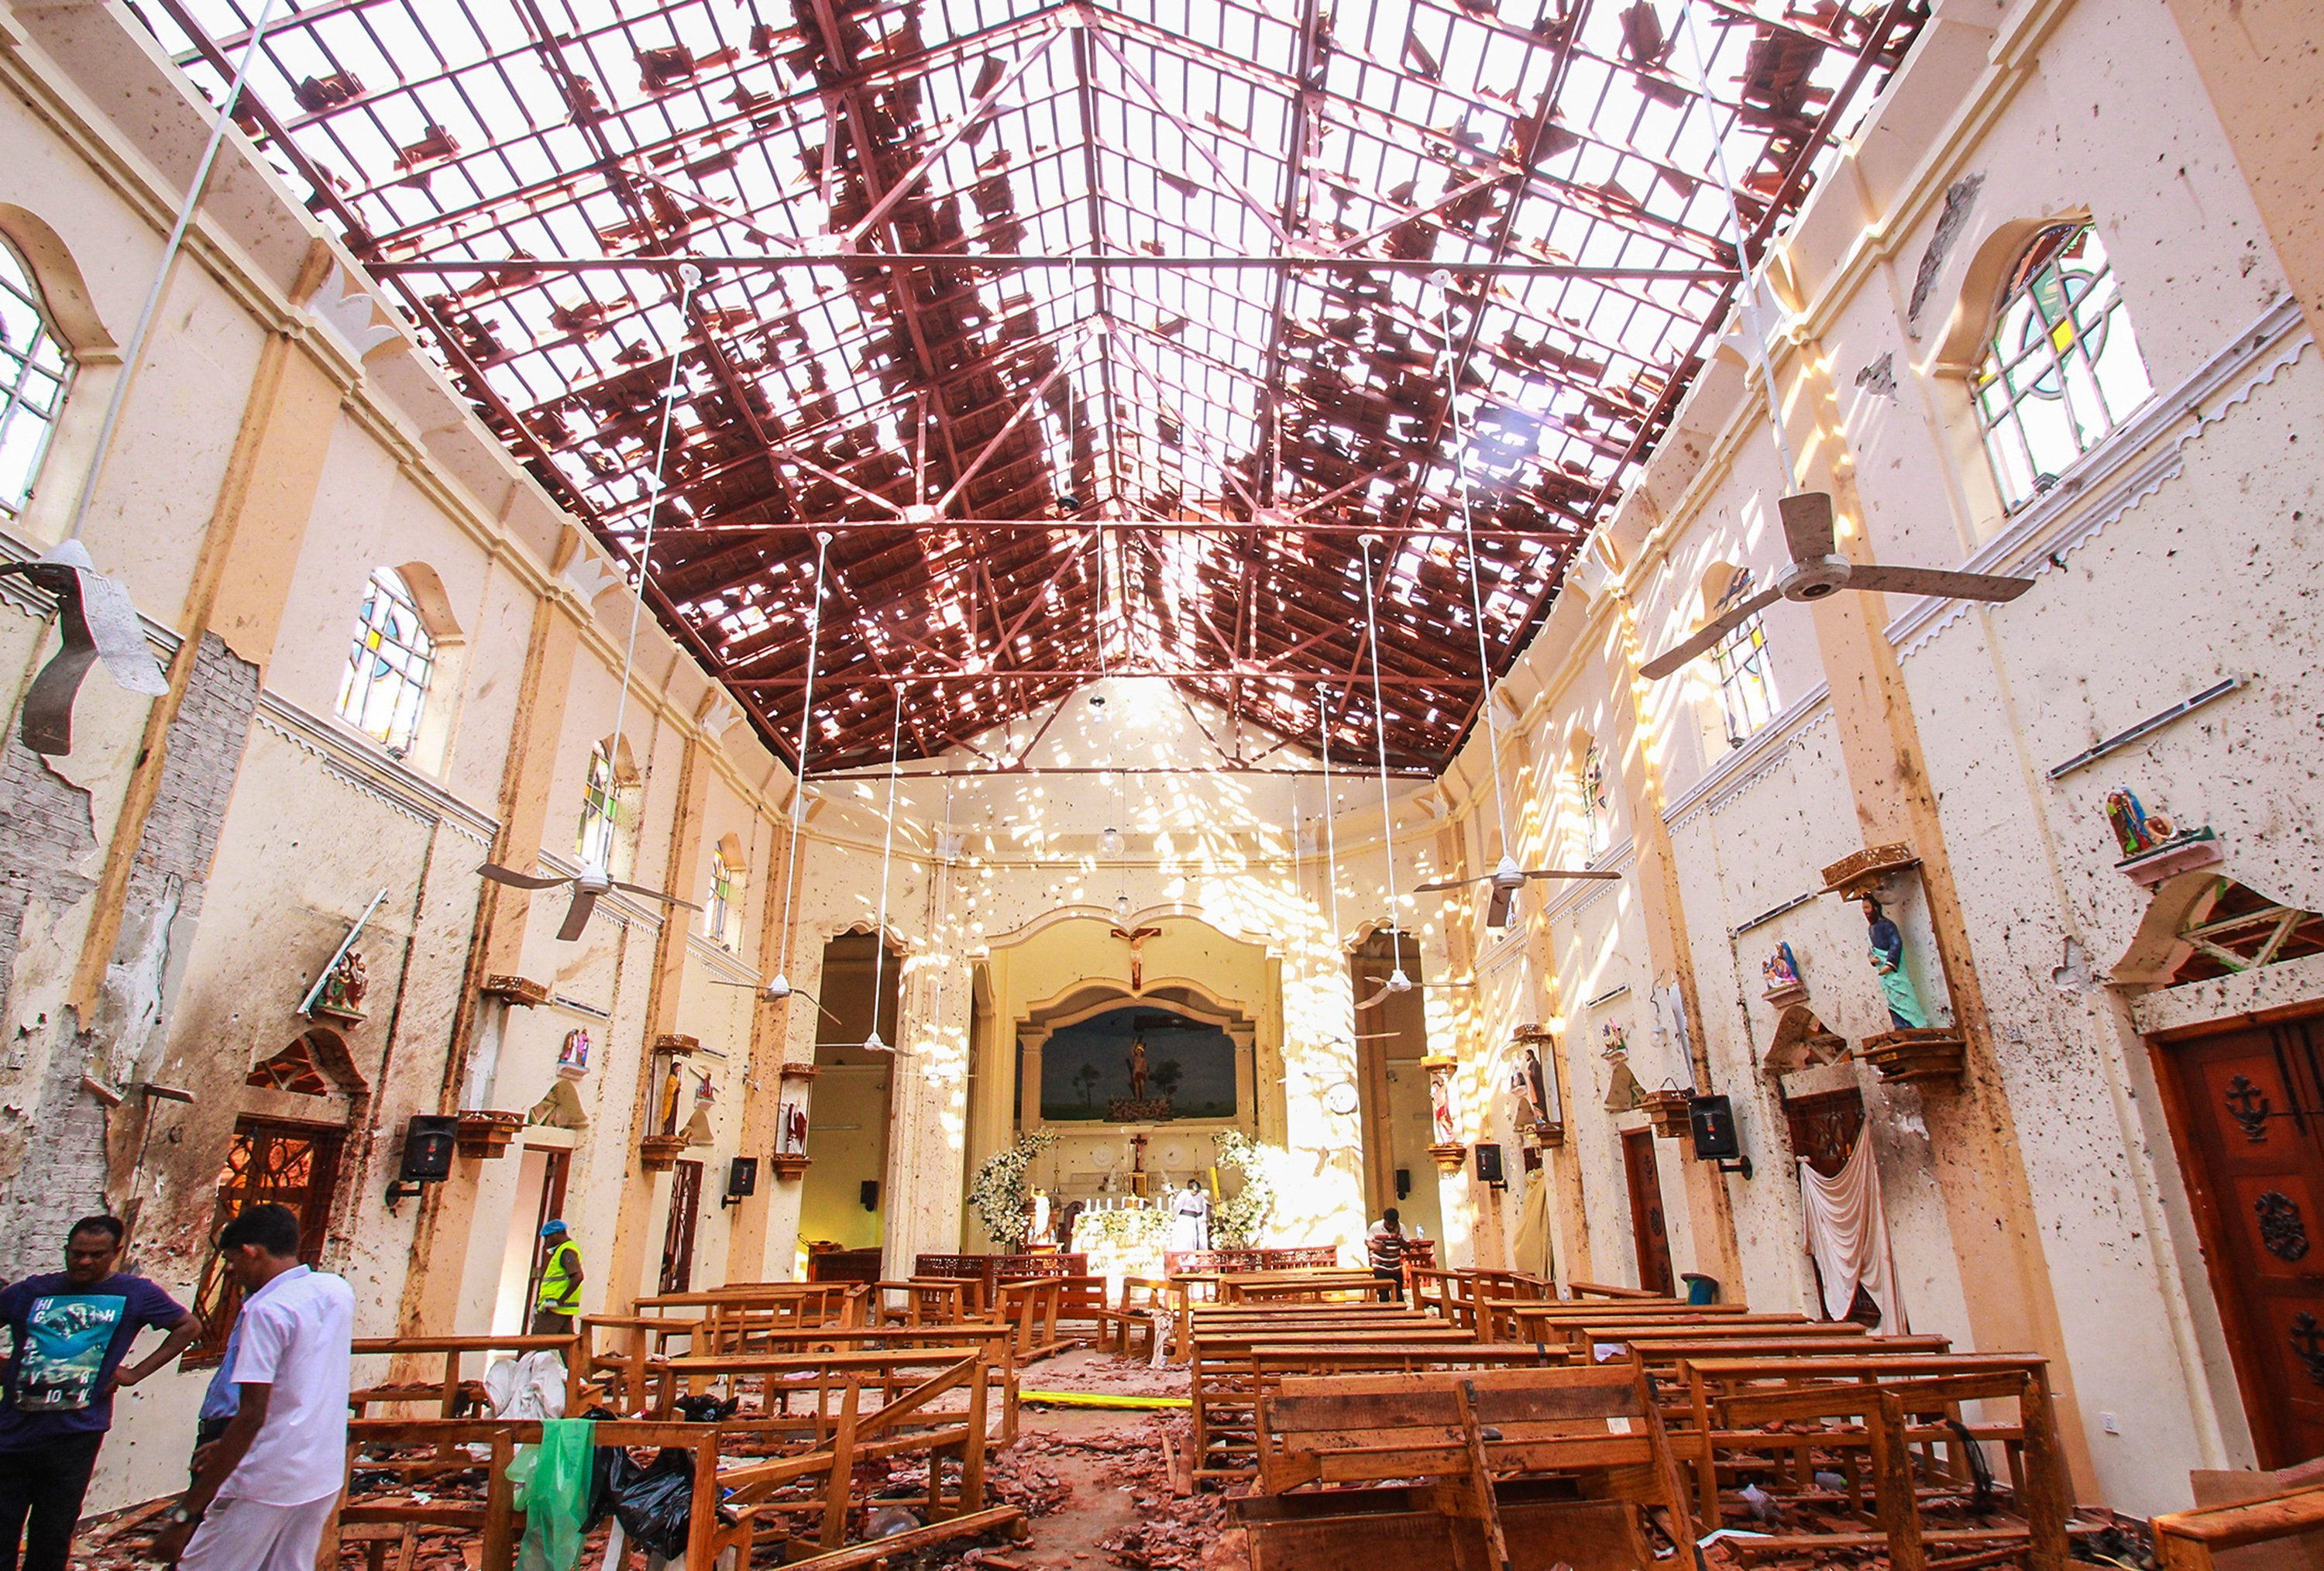 Auhorities inspect St. Sebastian's Church in Negombo, North of Colombo, in Sri Lanka | Photo: Getty Images